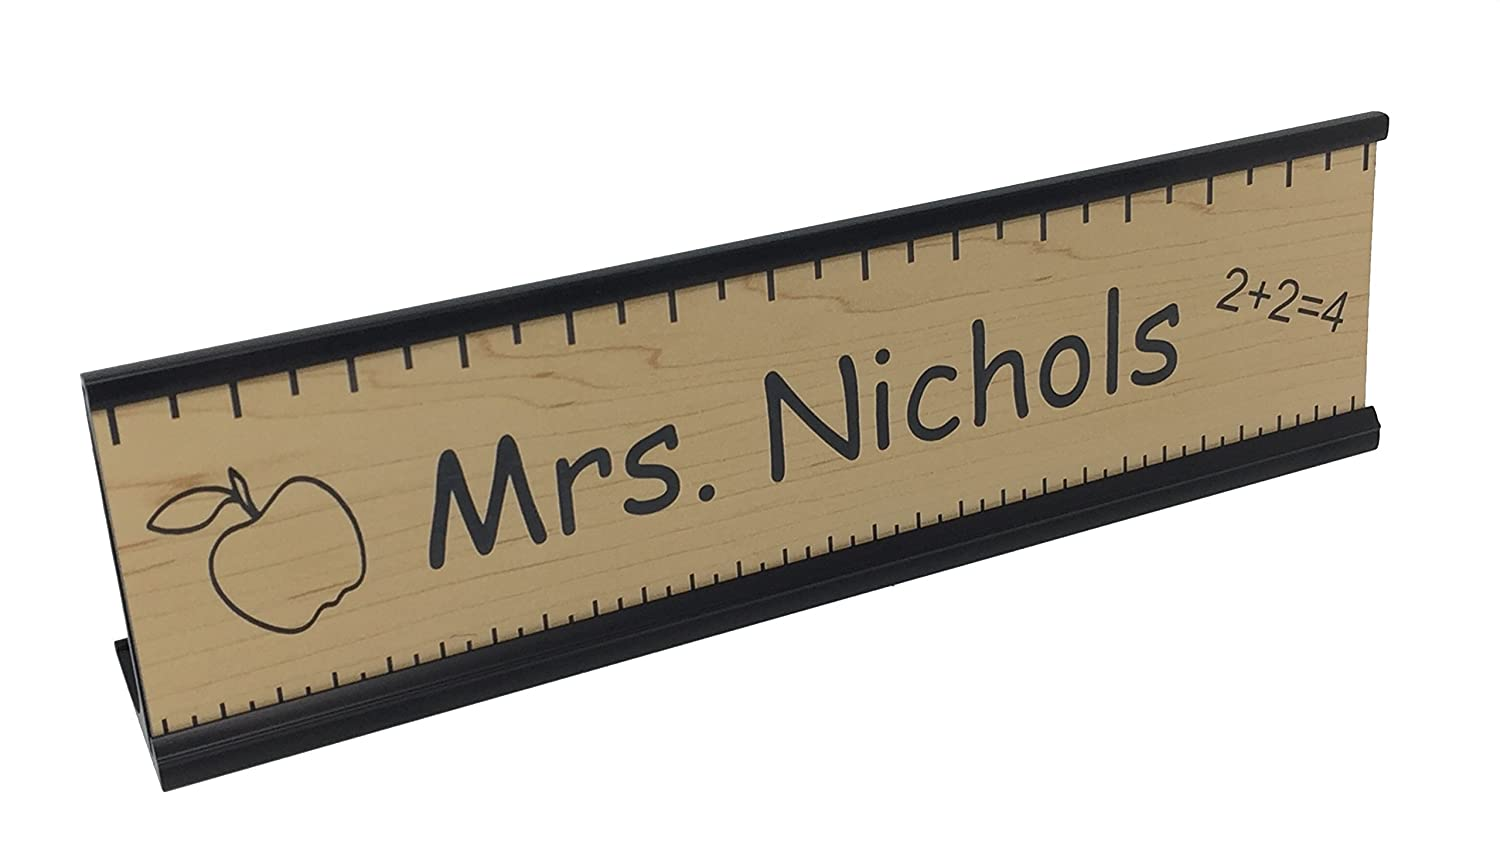 Teacher Office Desk Name Plate Or Door Sign With Or Wo Holder Free Engraving Great Gift For School Teacher With Black Desk Holder